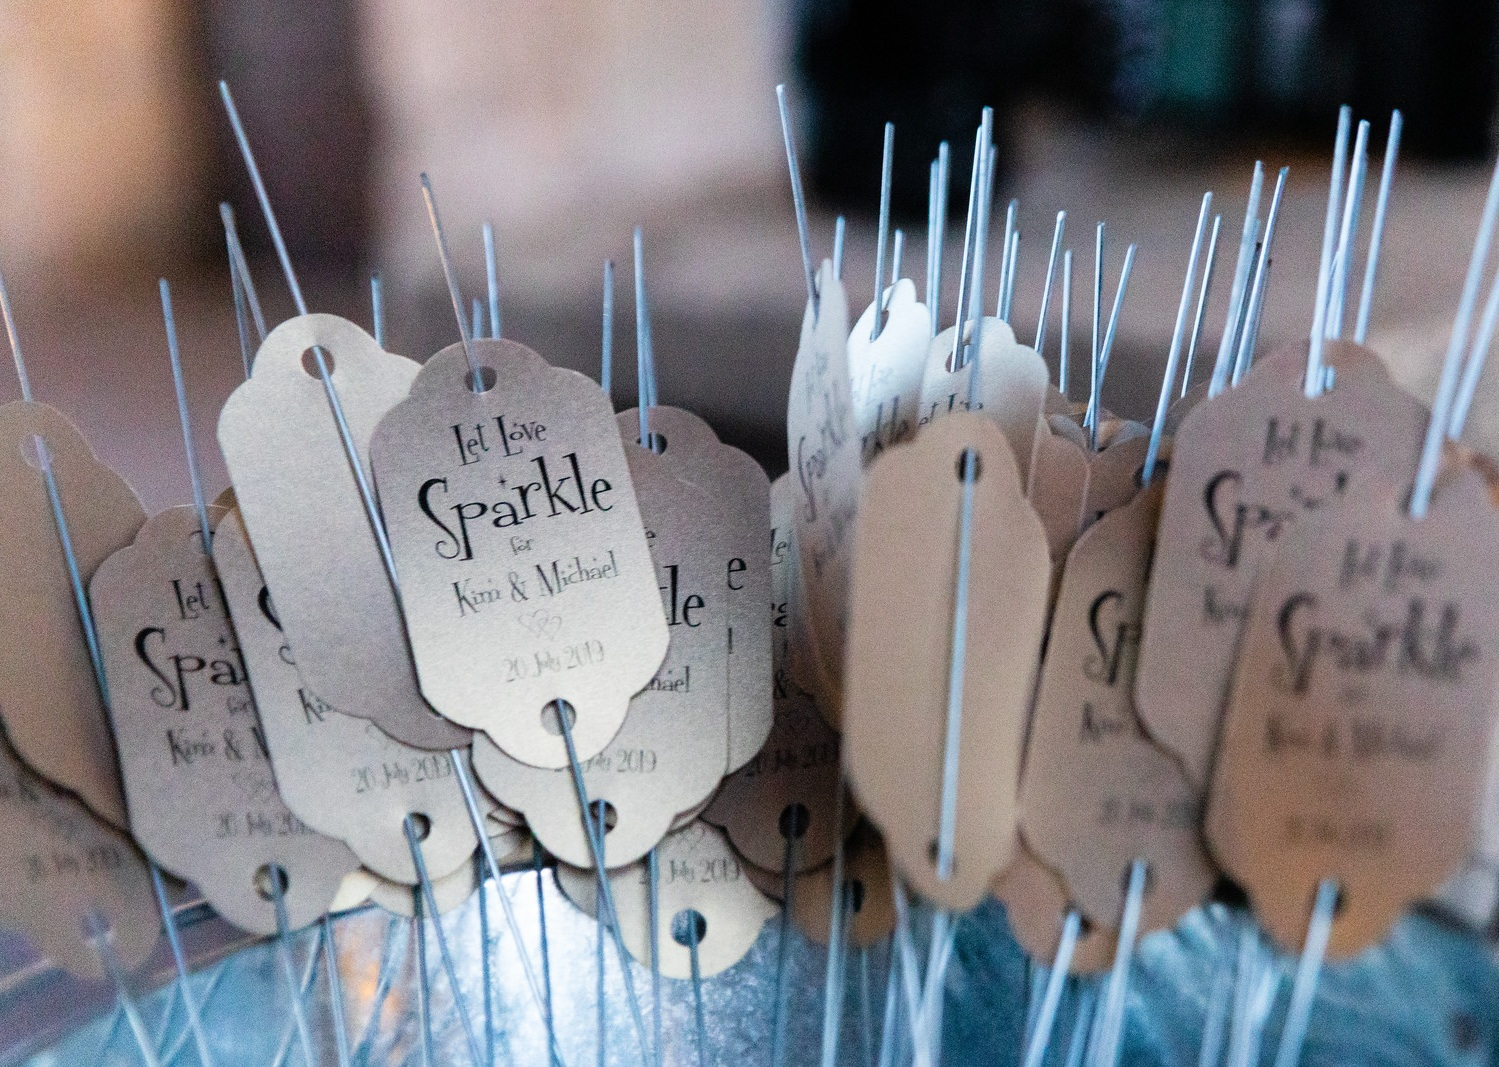 thornbury-castle-wedding-the-planning-lounge-sparkler-tags